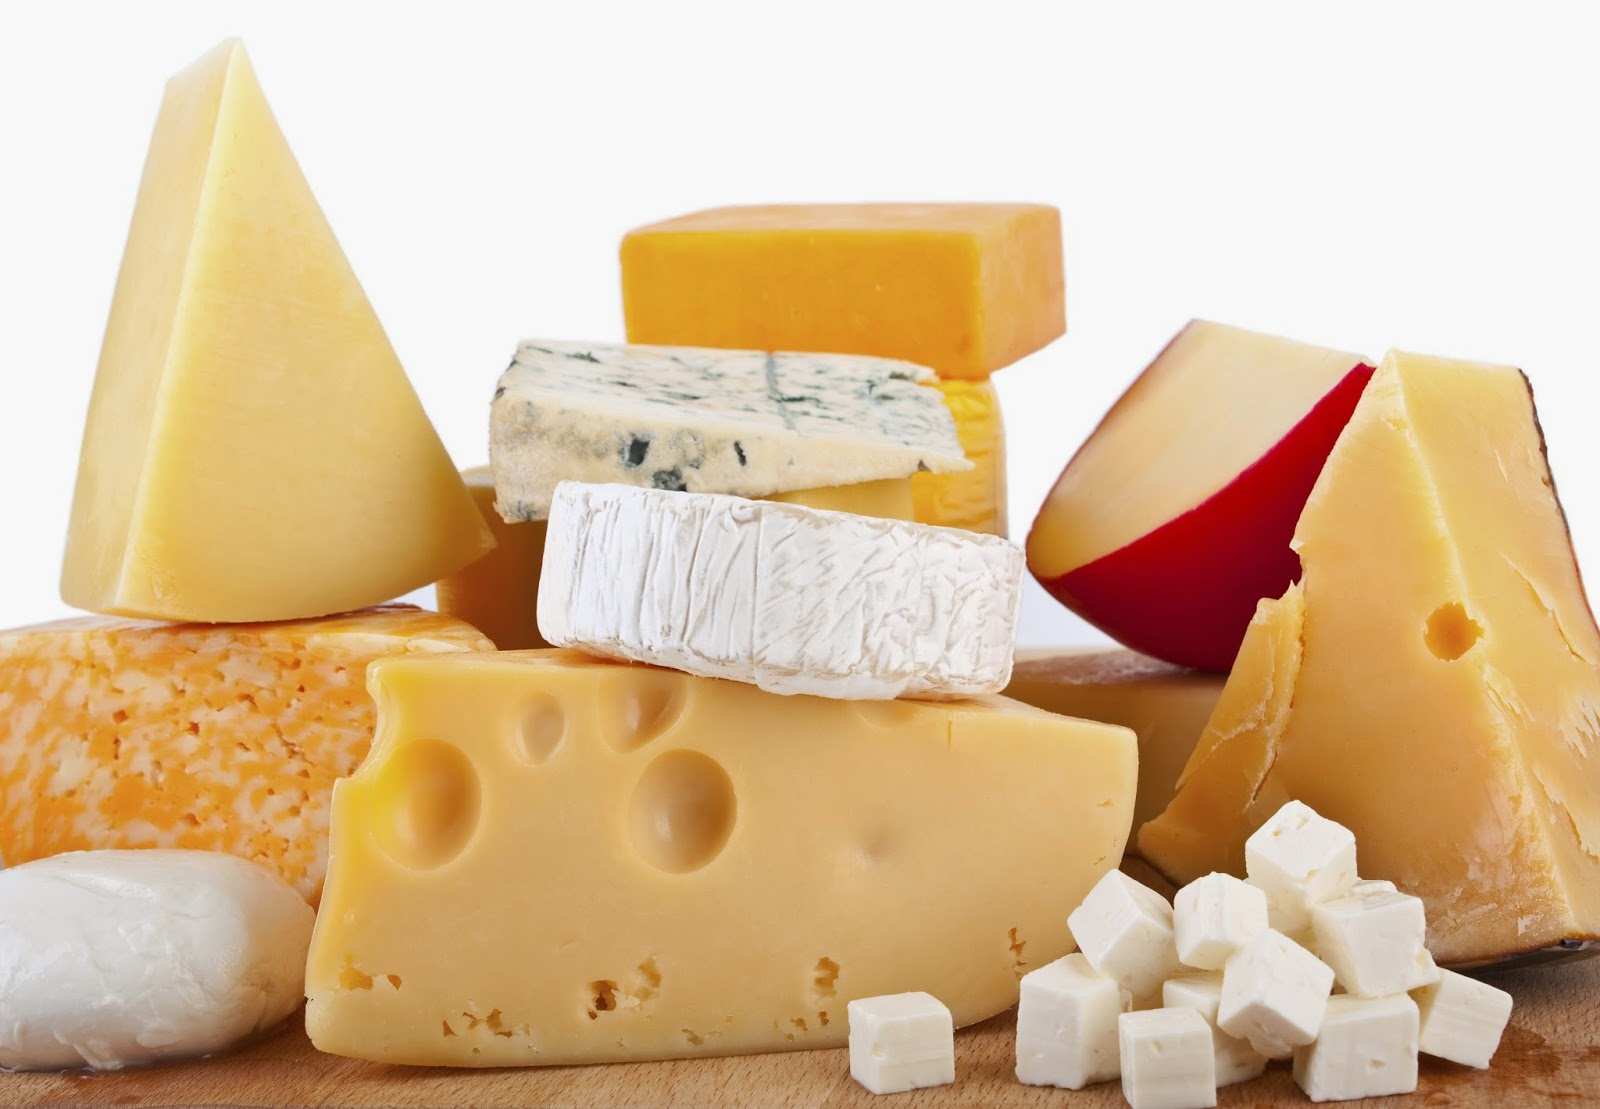 Does a World Without Cheese Really Make Any Sense?